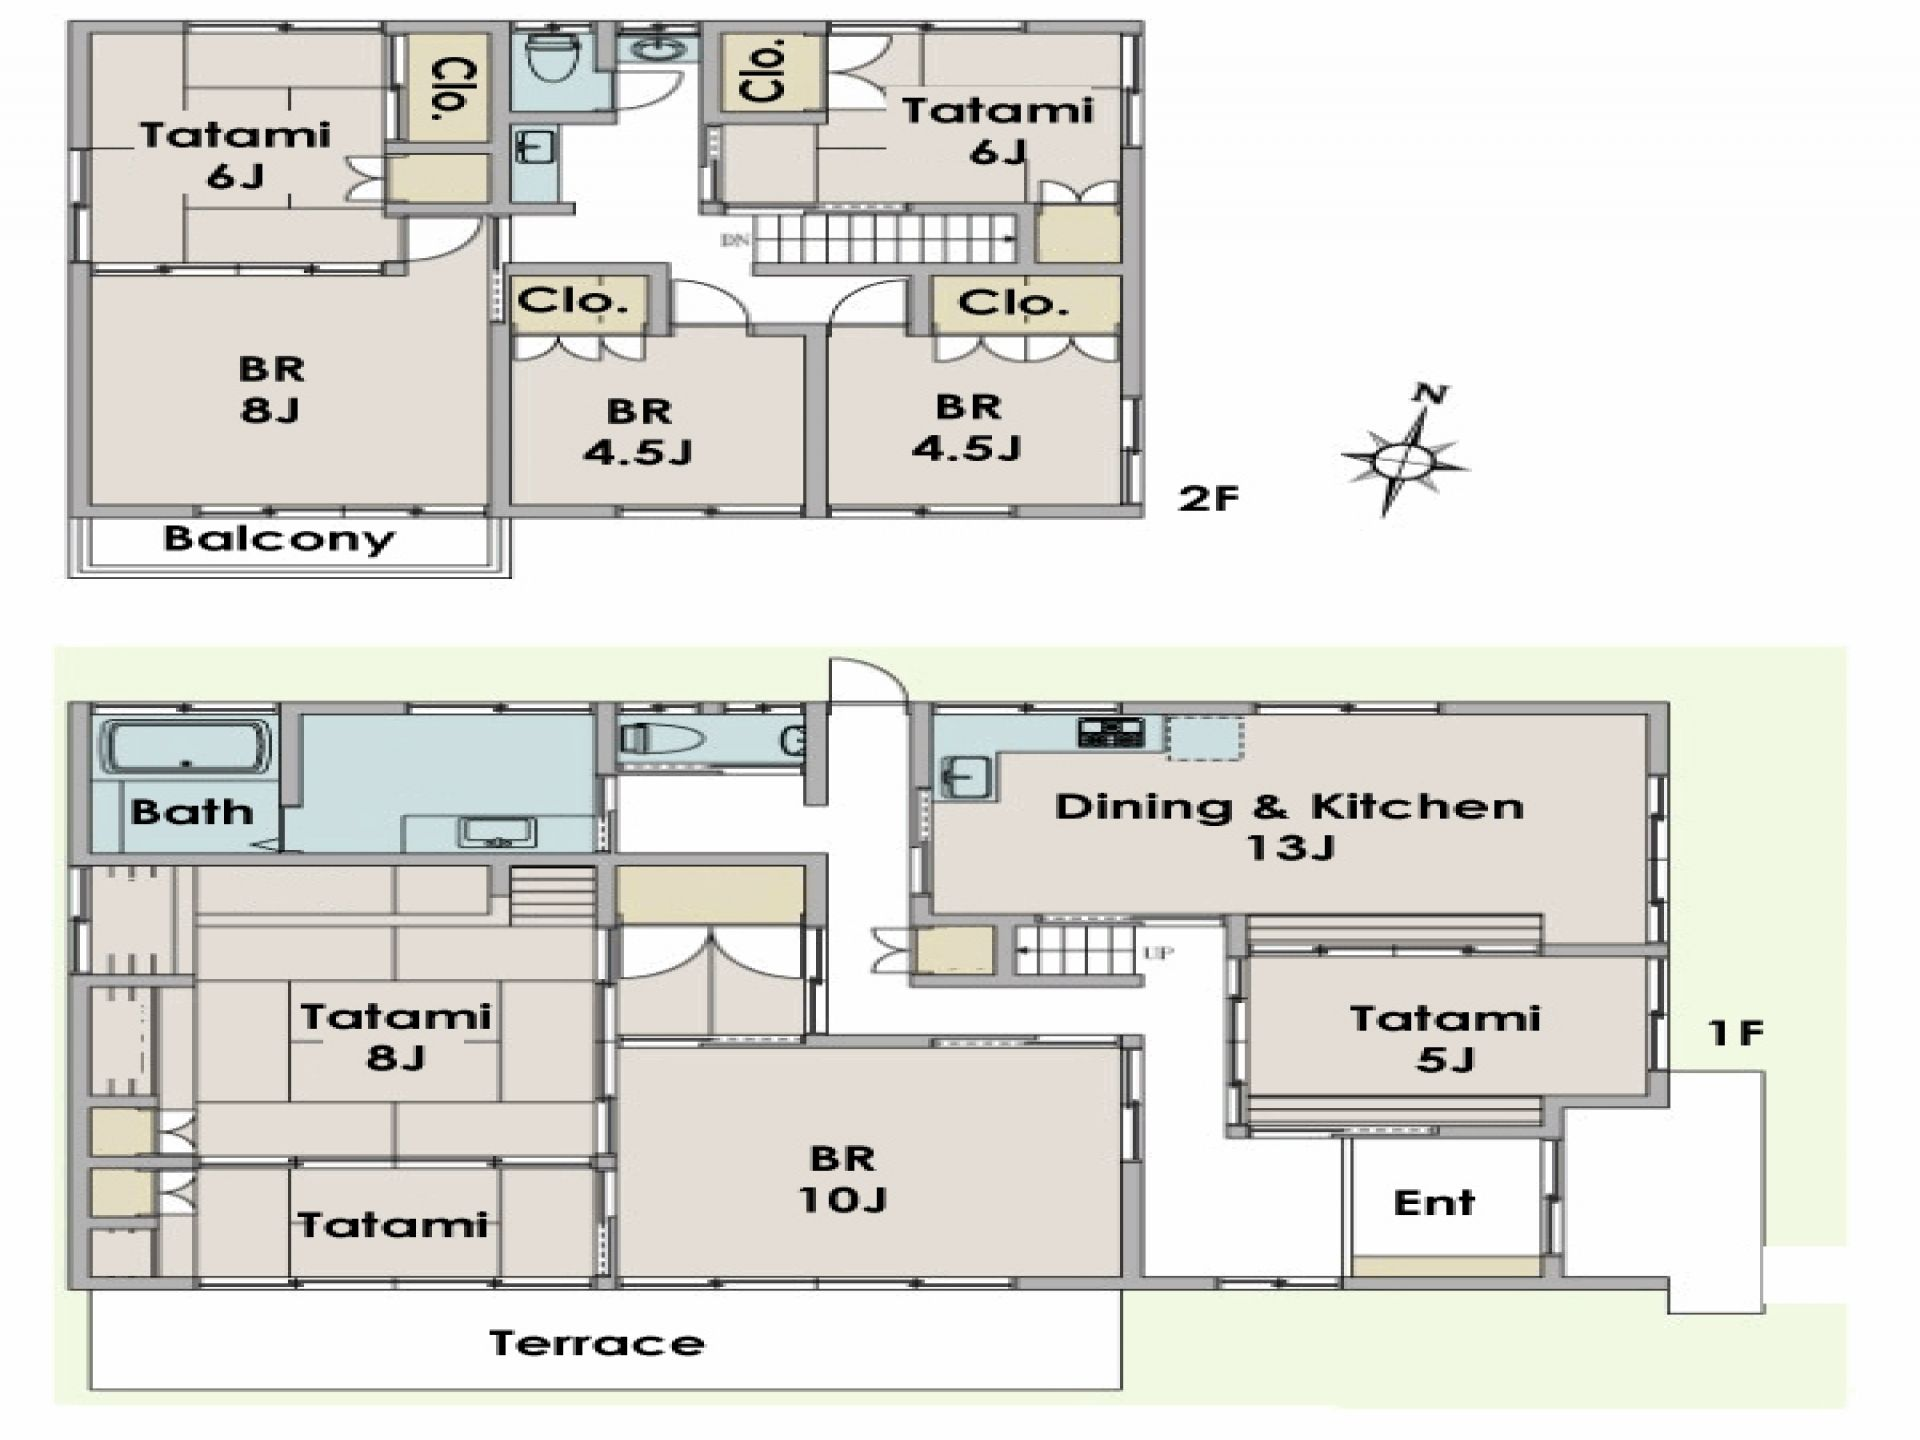 Traditional japanese house floor plan google search floorplans traditional japanese house floor plan google search malvernweather Images